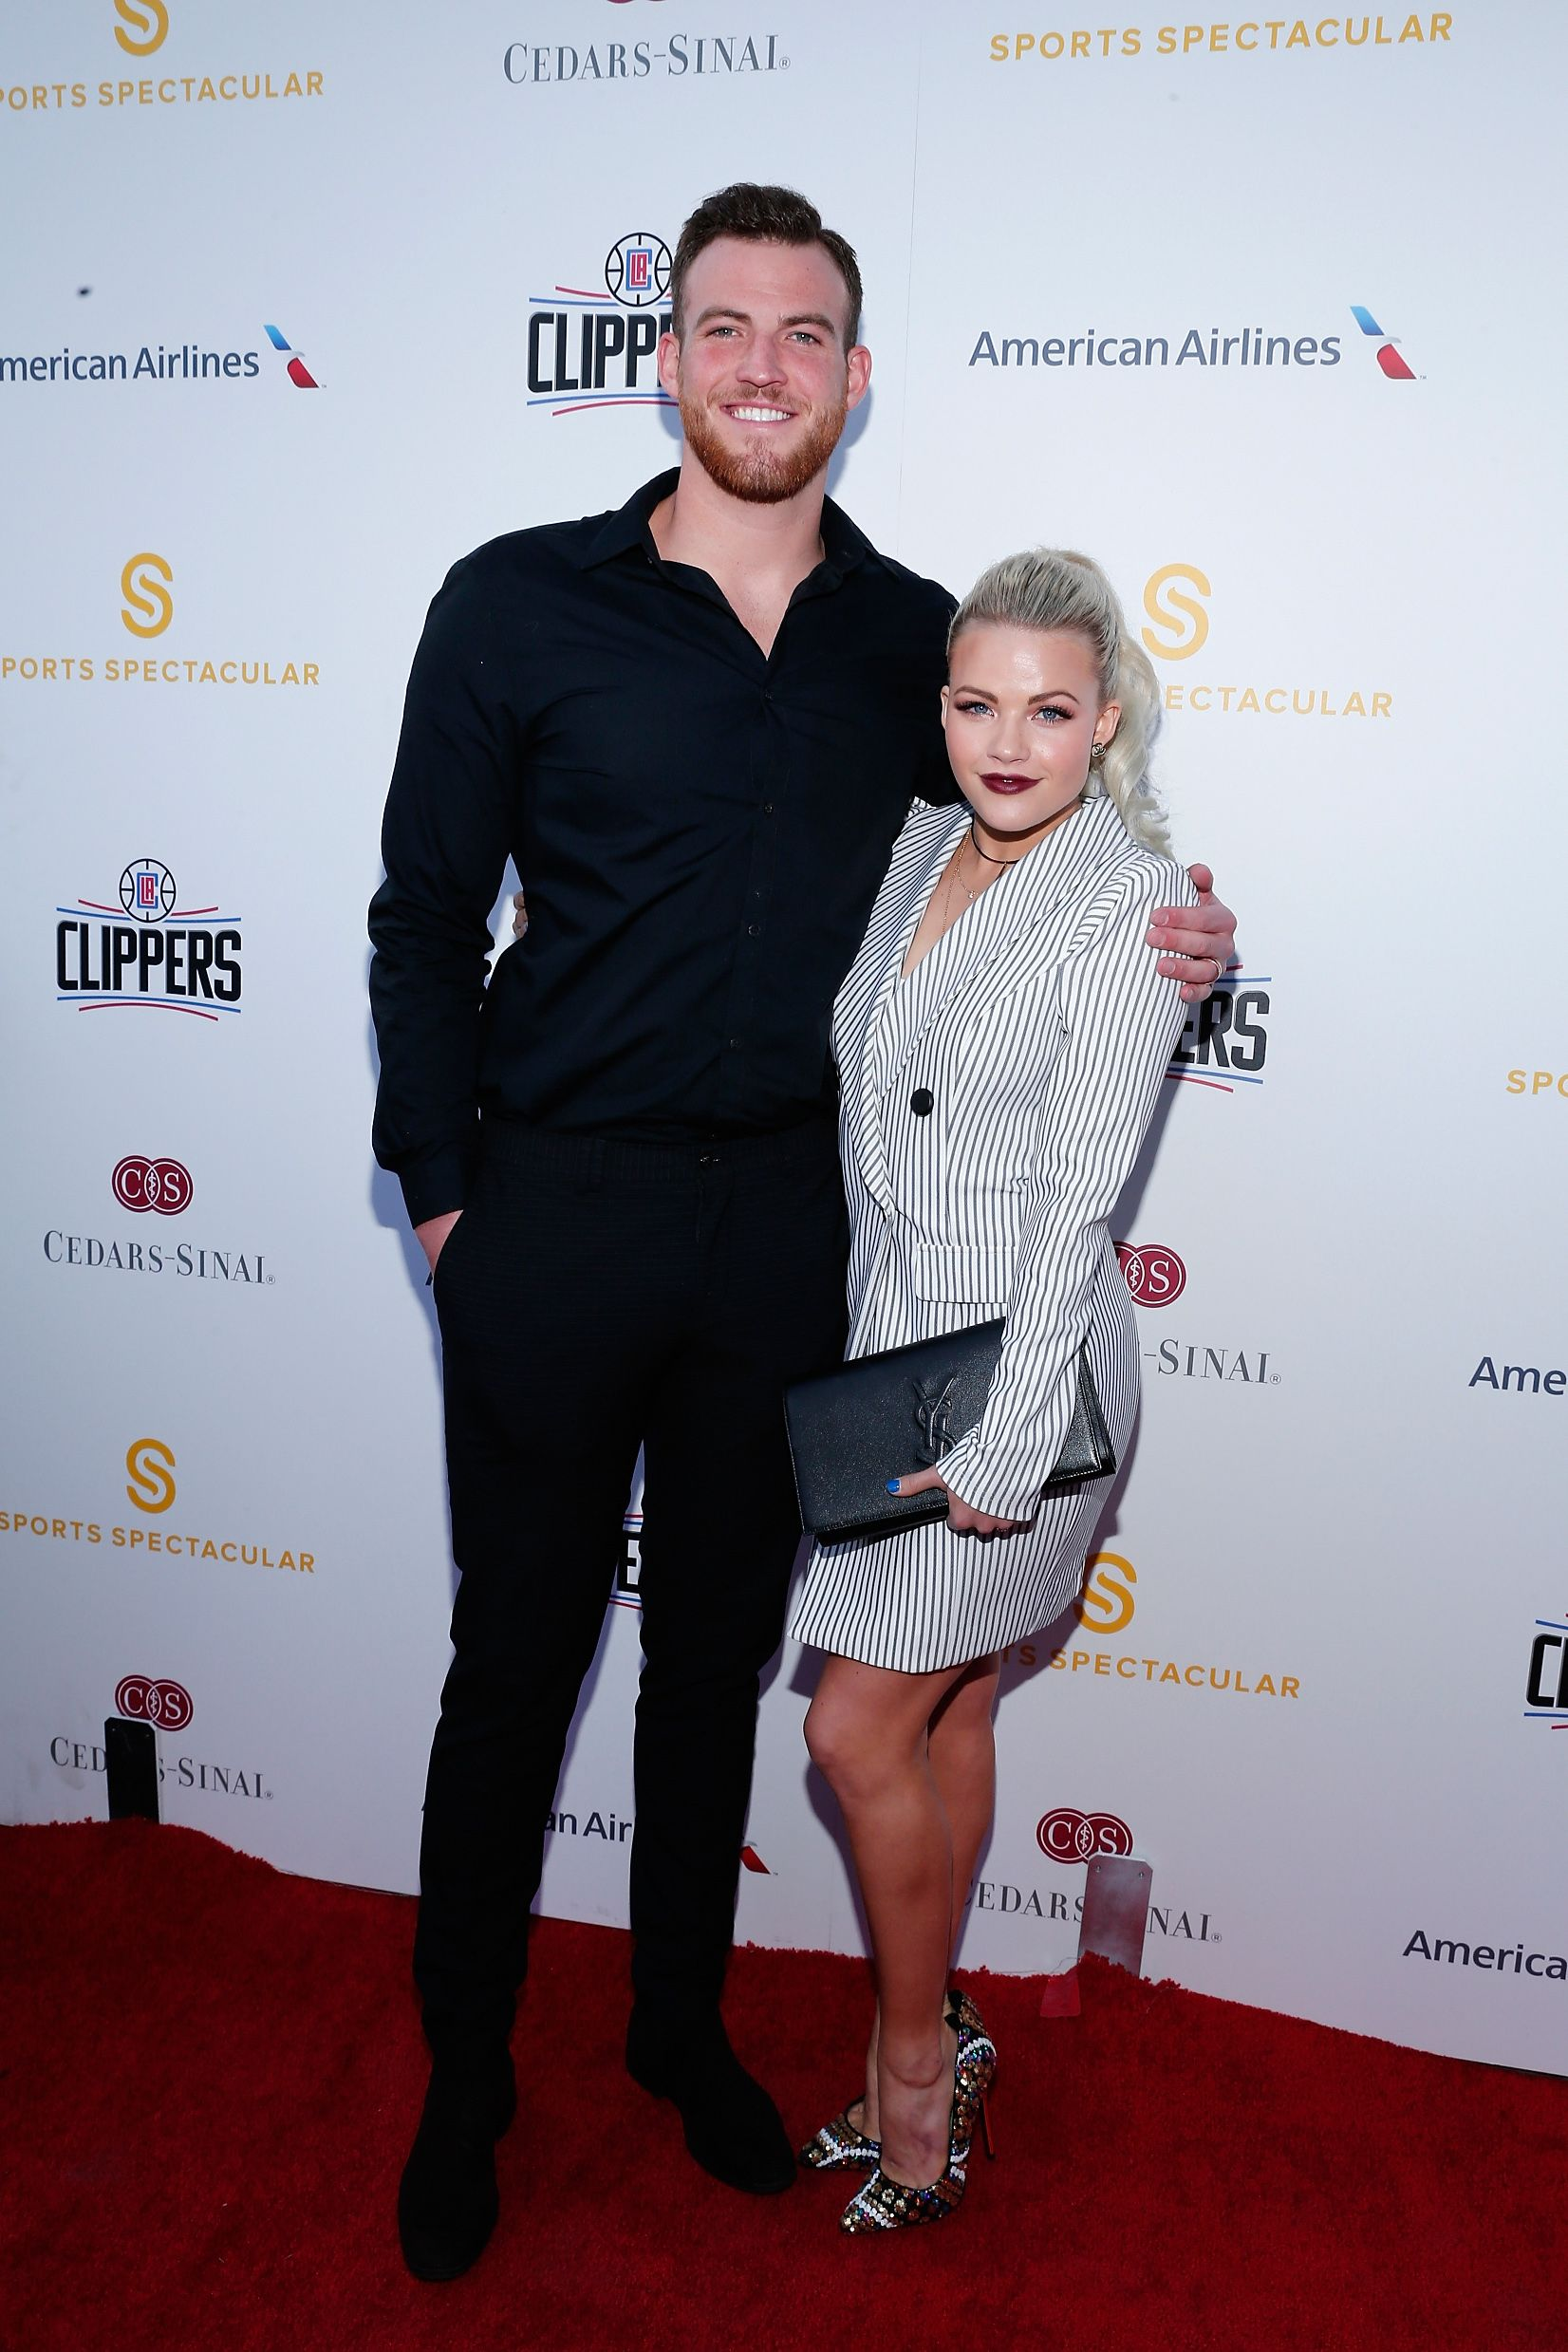 Carson McAllister and Witney Carson at the Cedars-Sinai Sports Spectacular in West Beverly Hills on March 25, 2016 | Getty Images